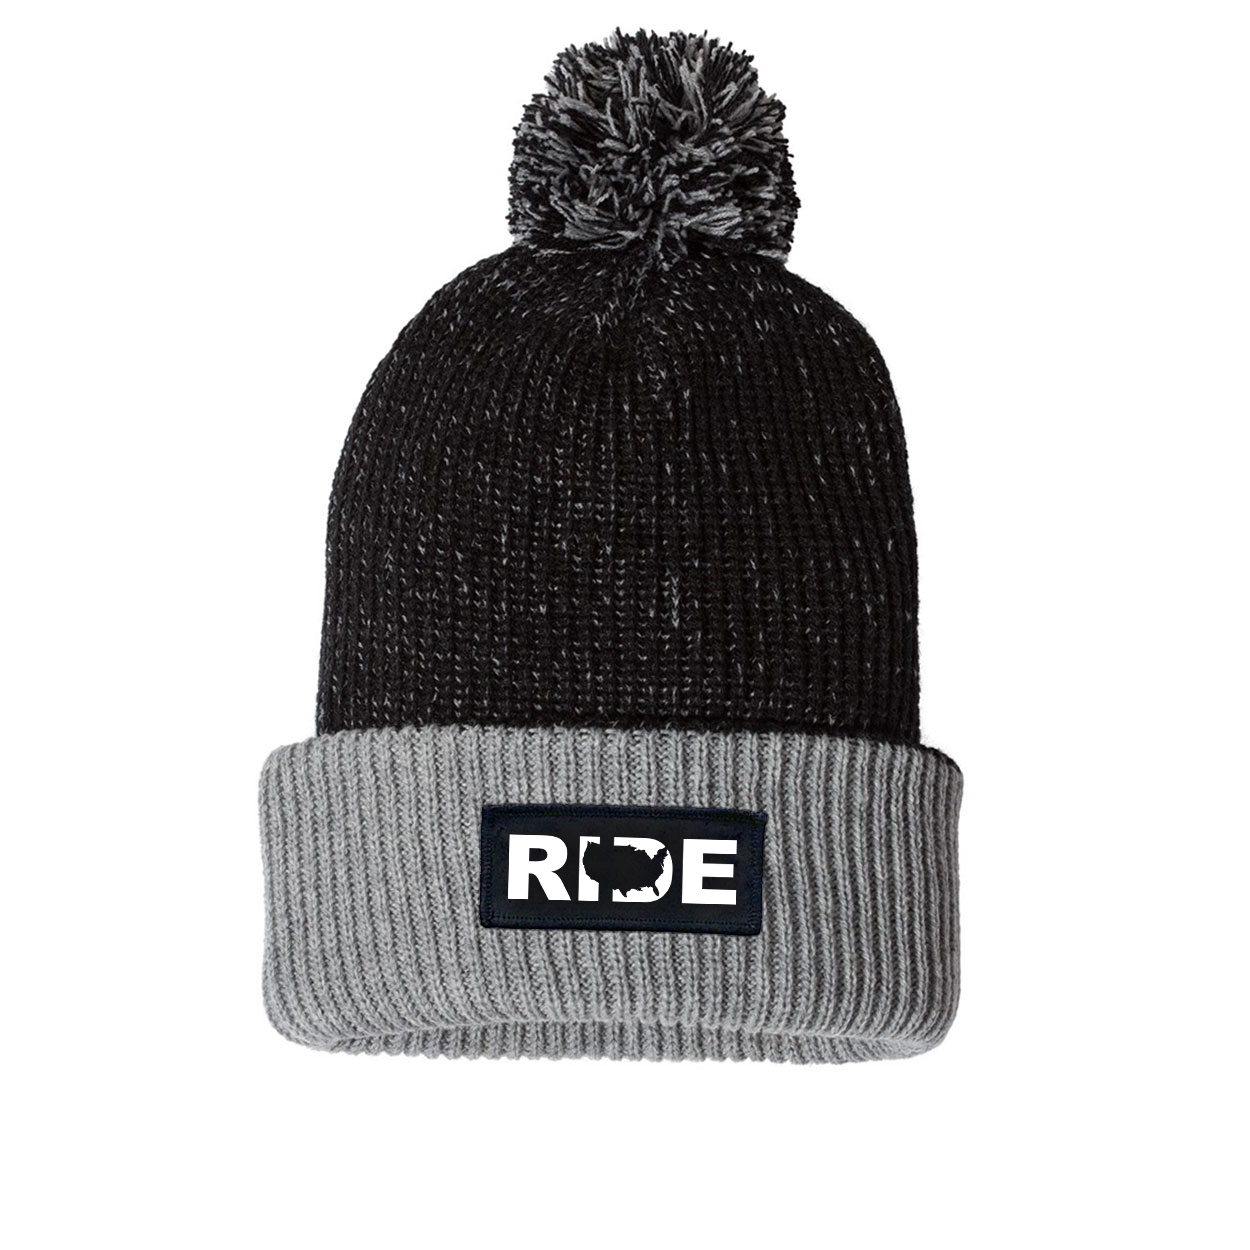 Ride United States Night Out Woven Patch Roll Up Pom Knit Beanie Black/Gray (White Logo)